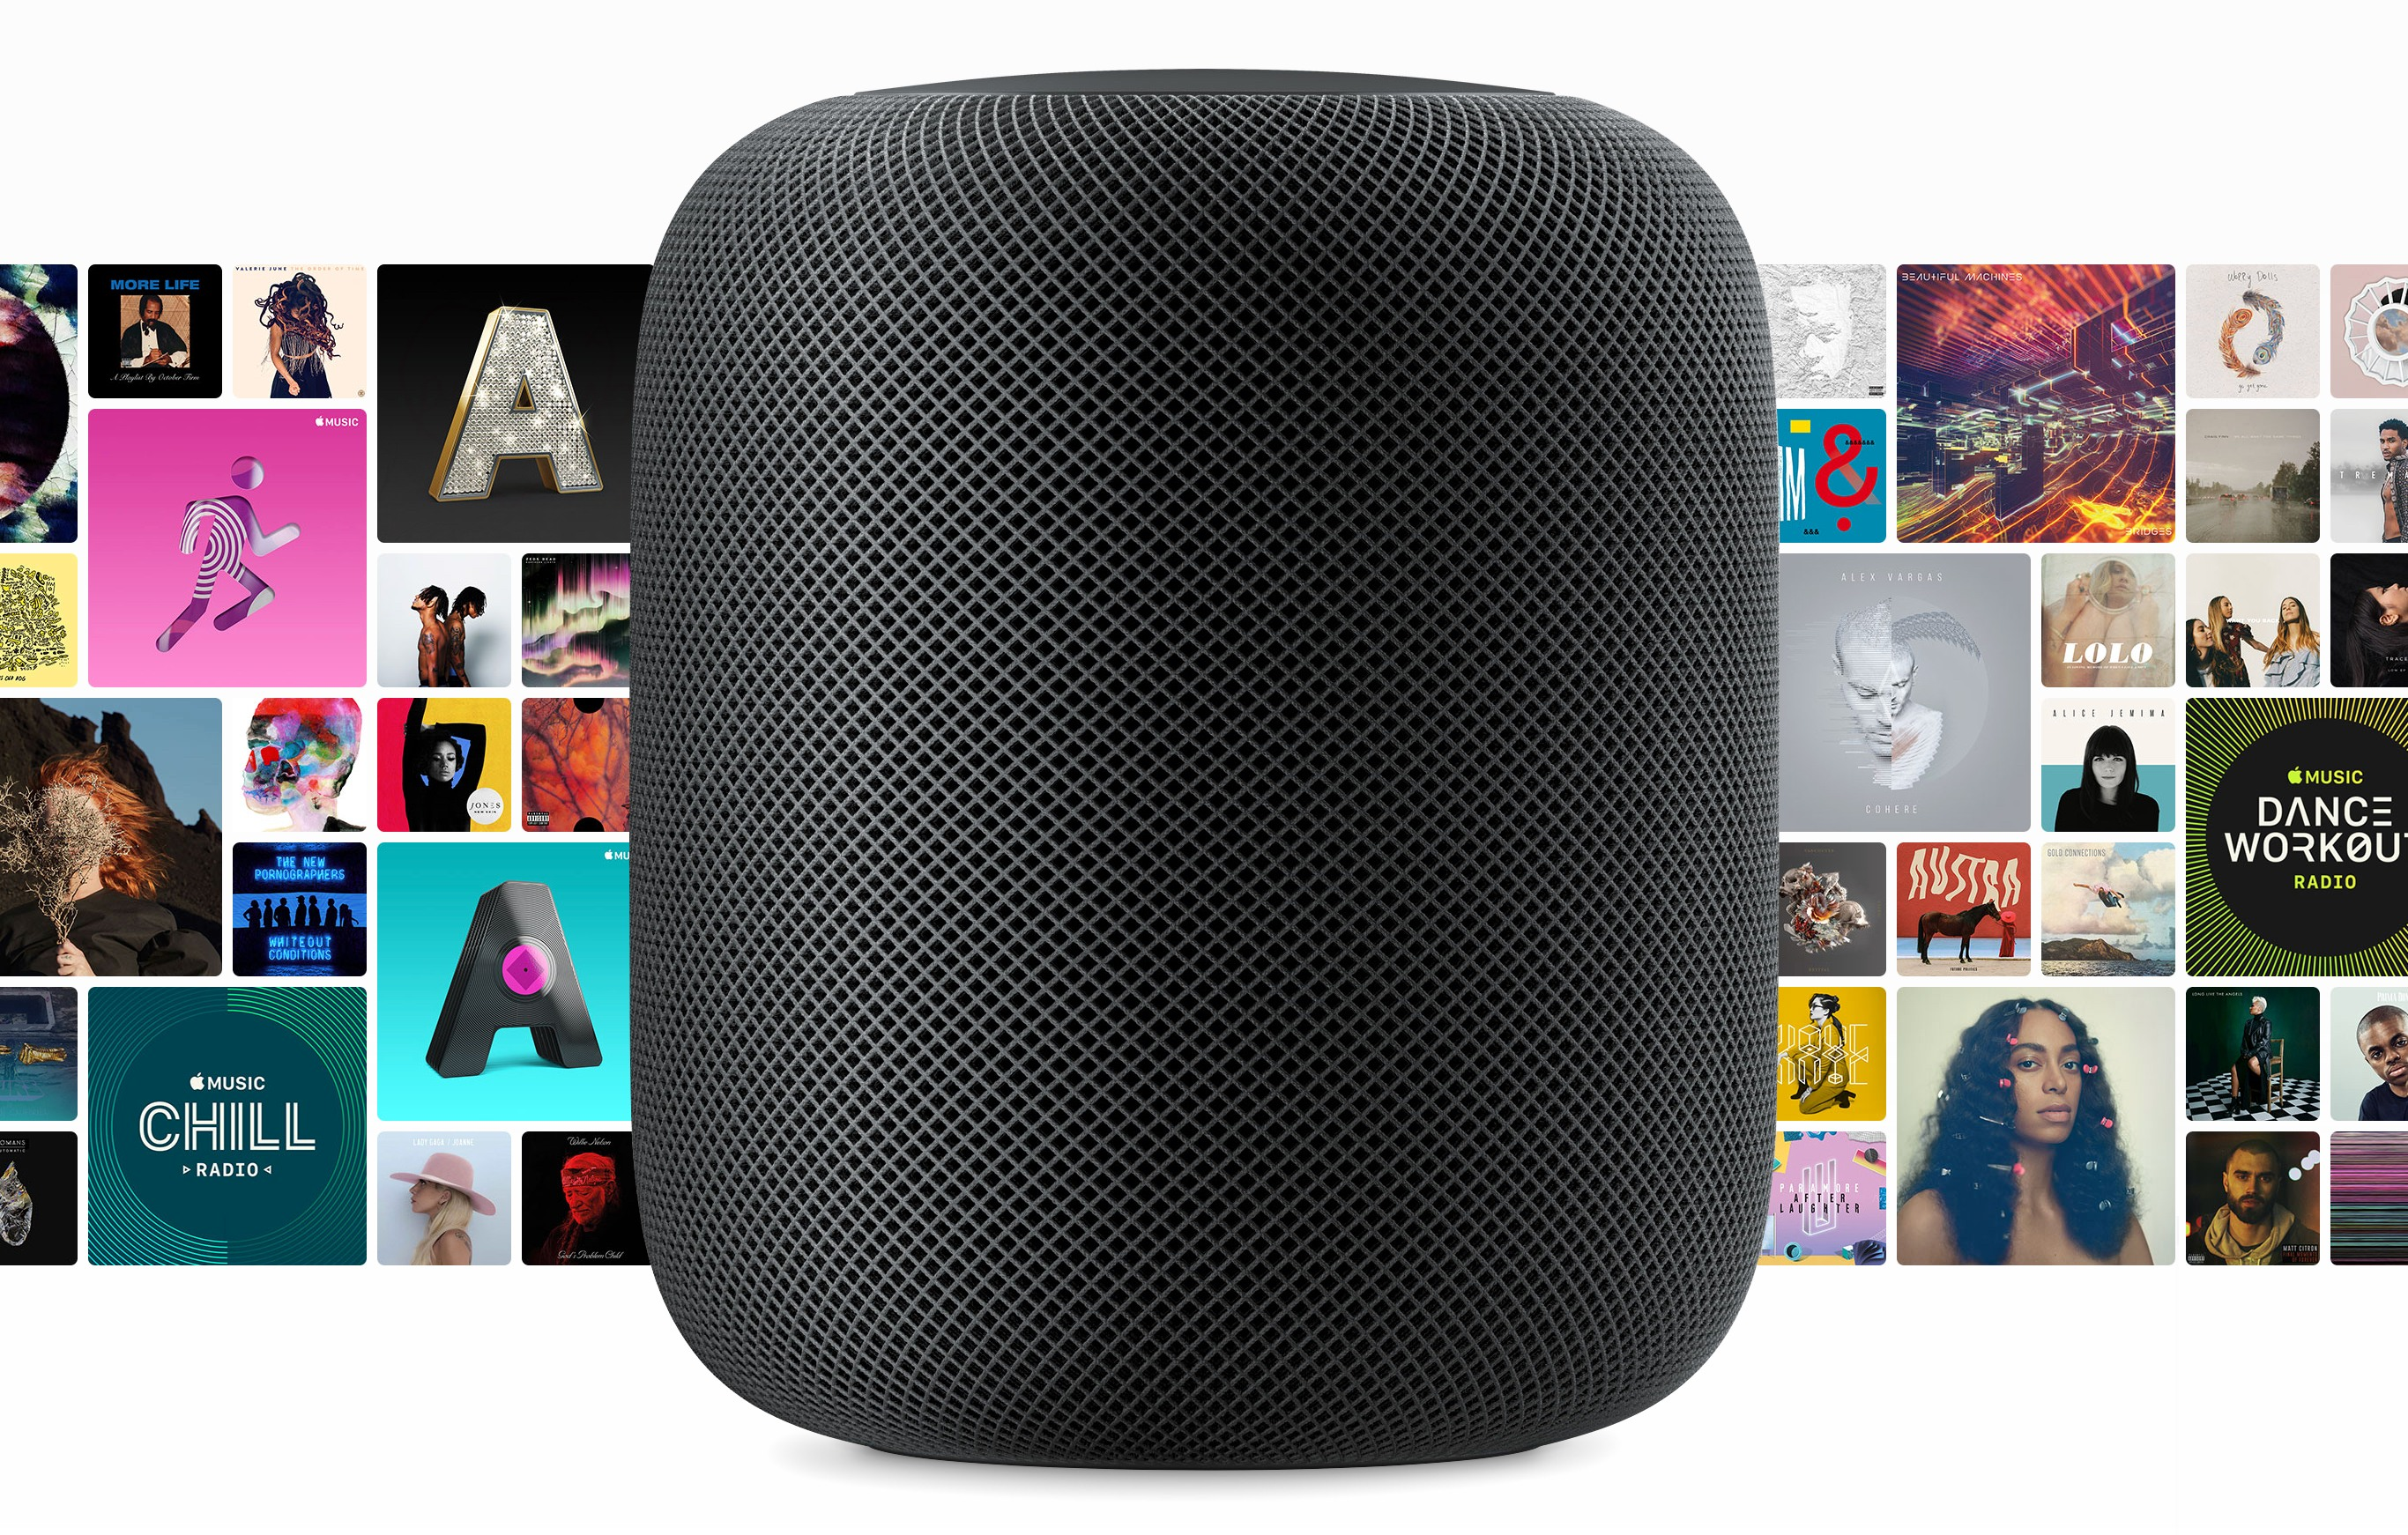 Sonos Pokes Fun at Apple's Homepod Launch